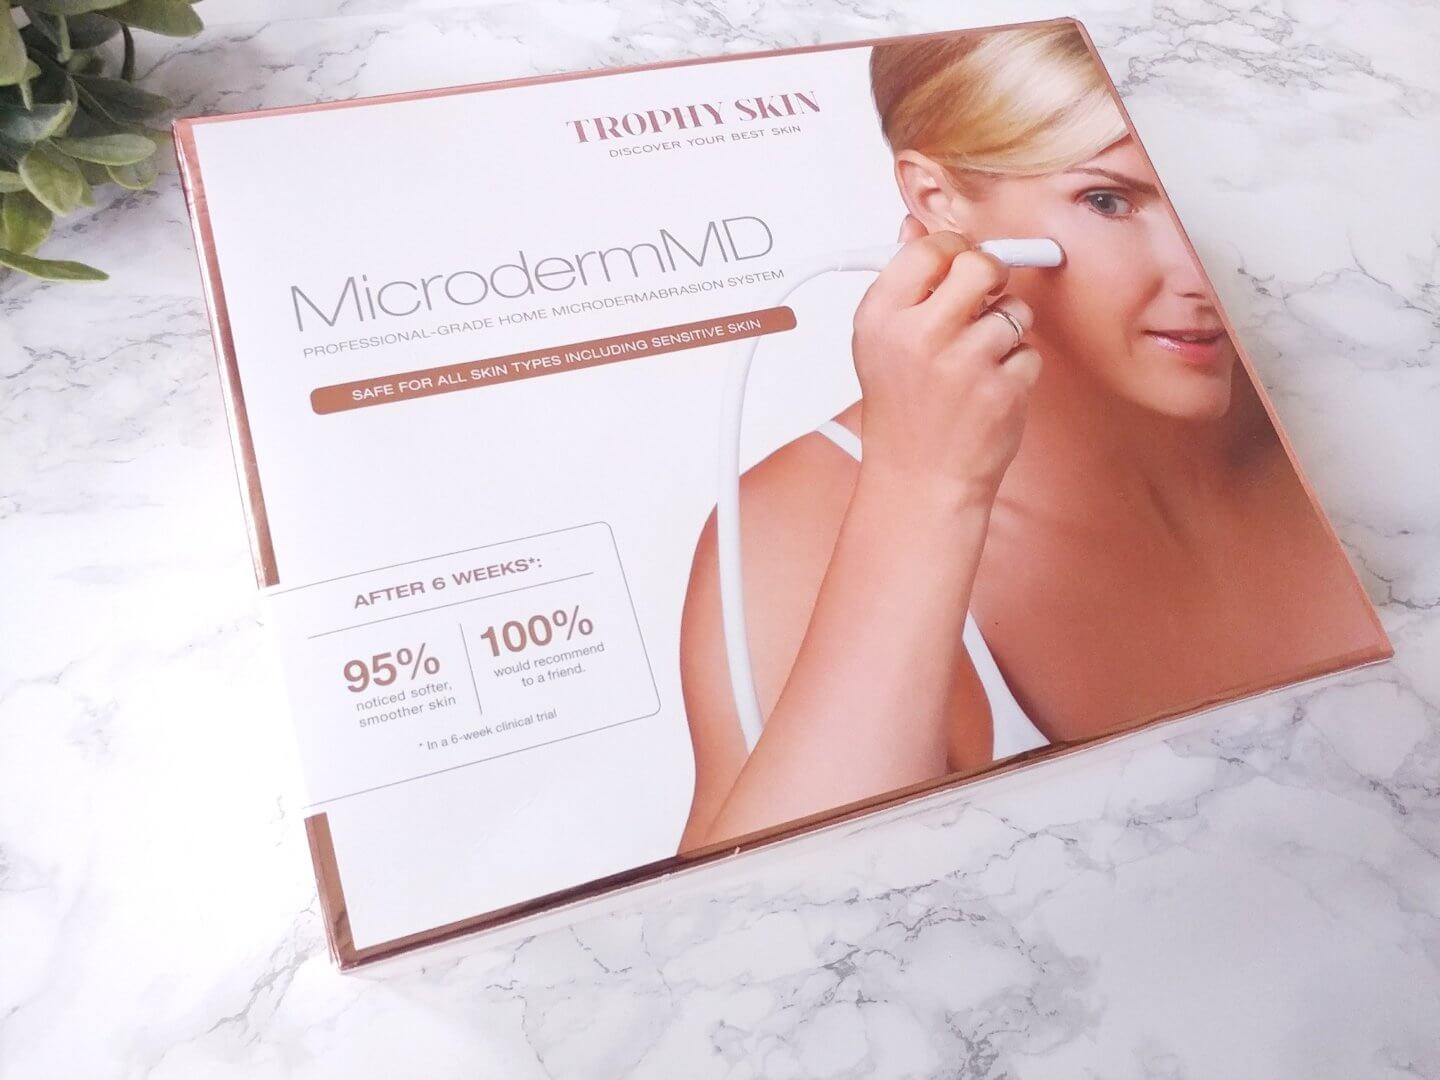 trophy-skin-microdermabrasion-system-packaging-patranila-project